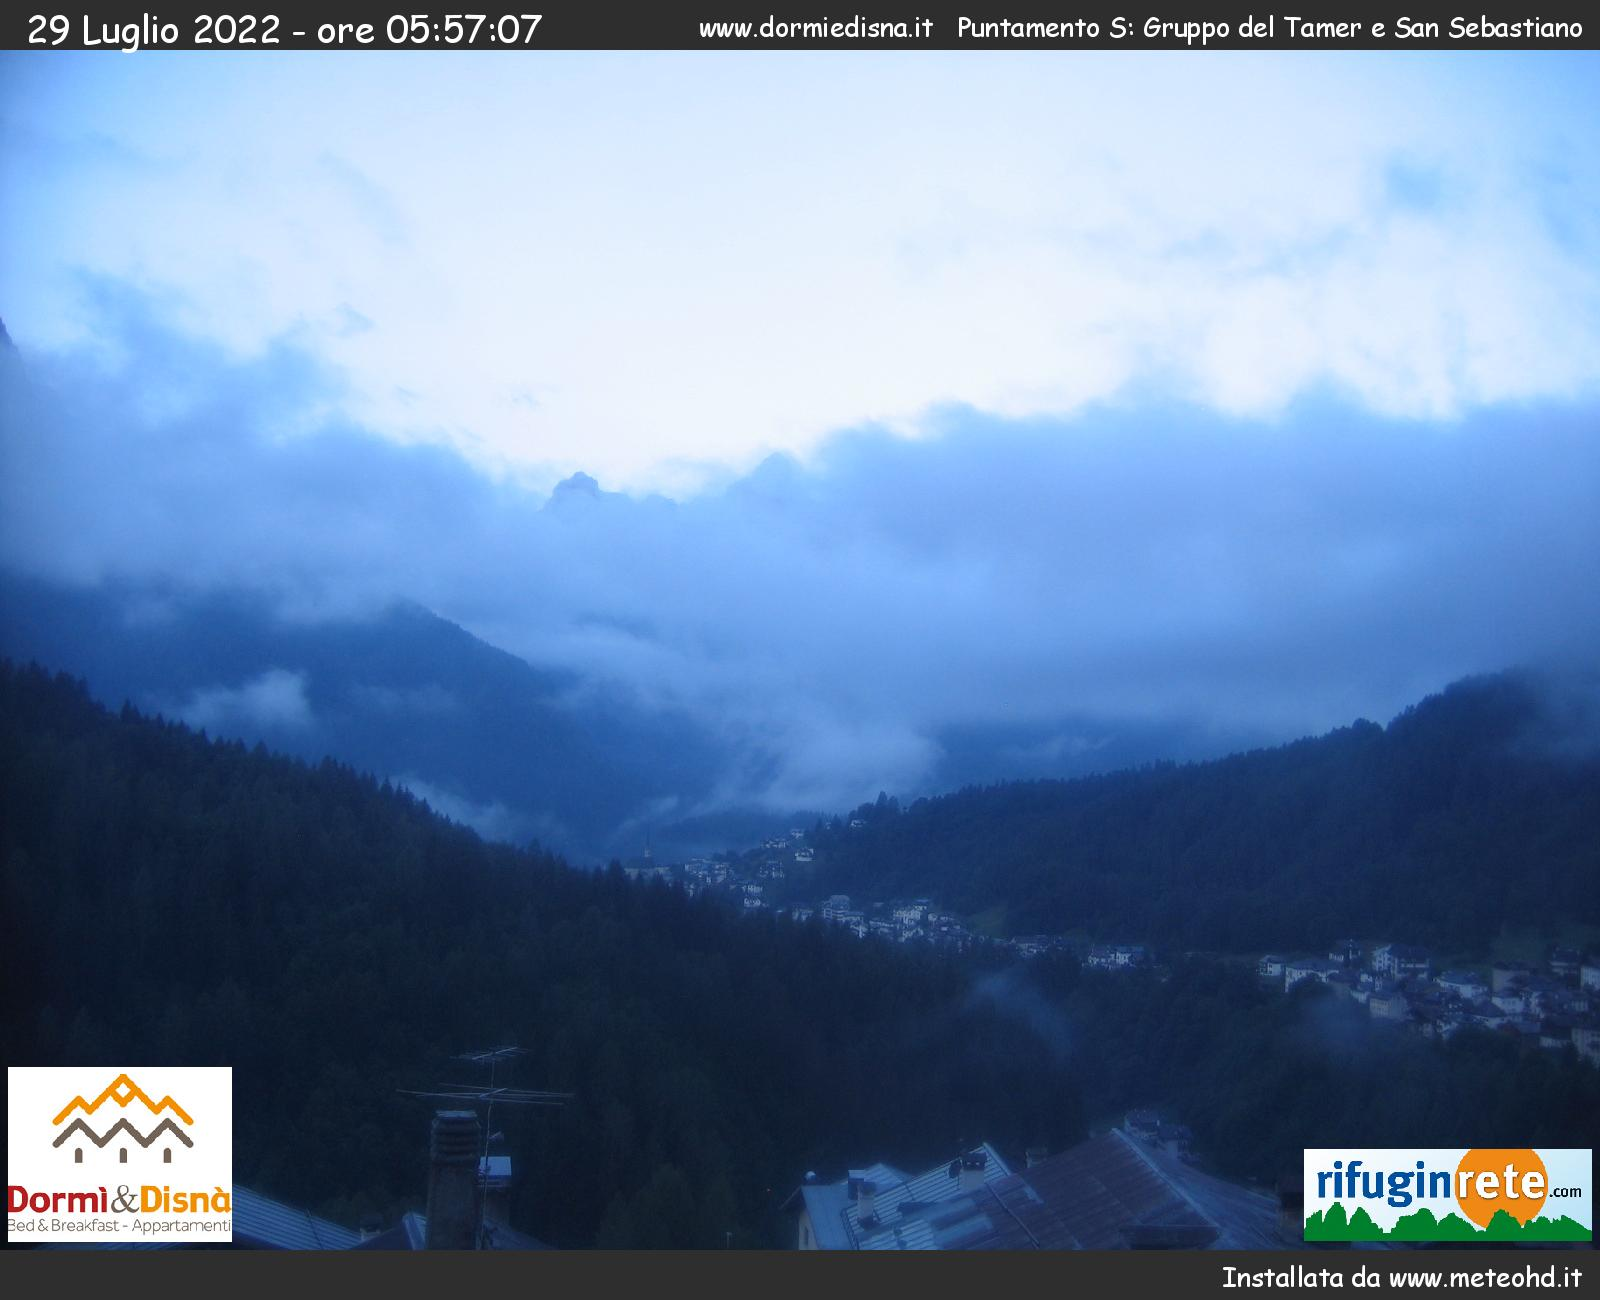 webcam fornesighe val di zoldo valzoldana